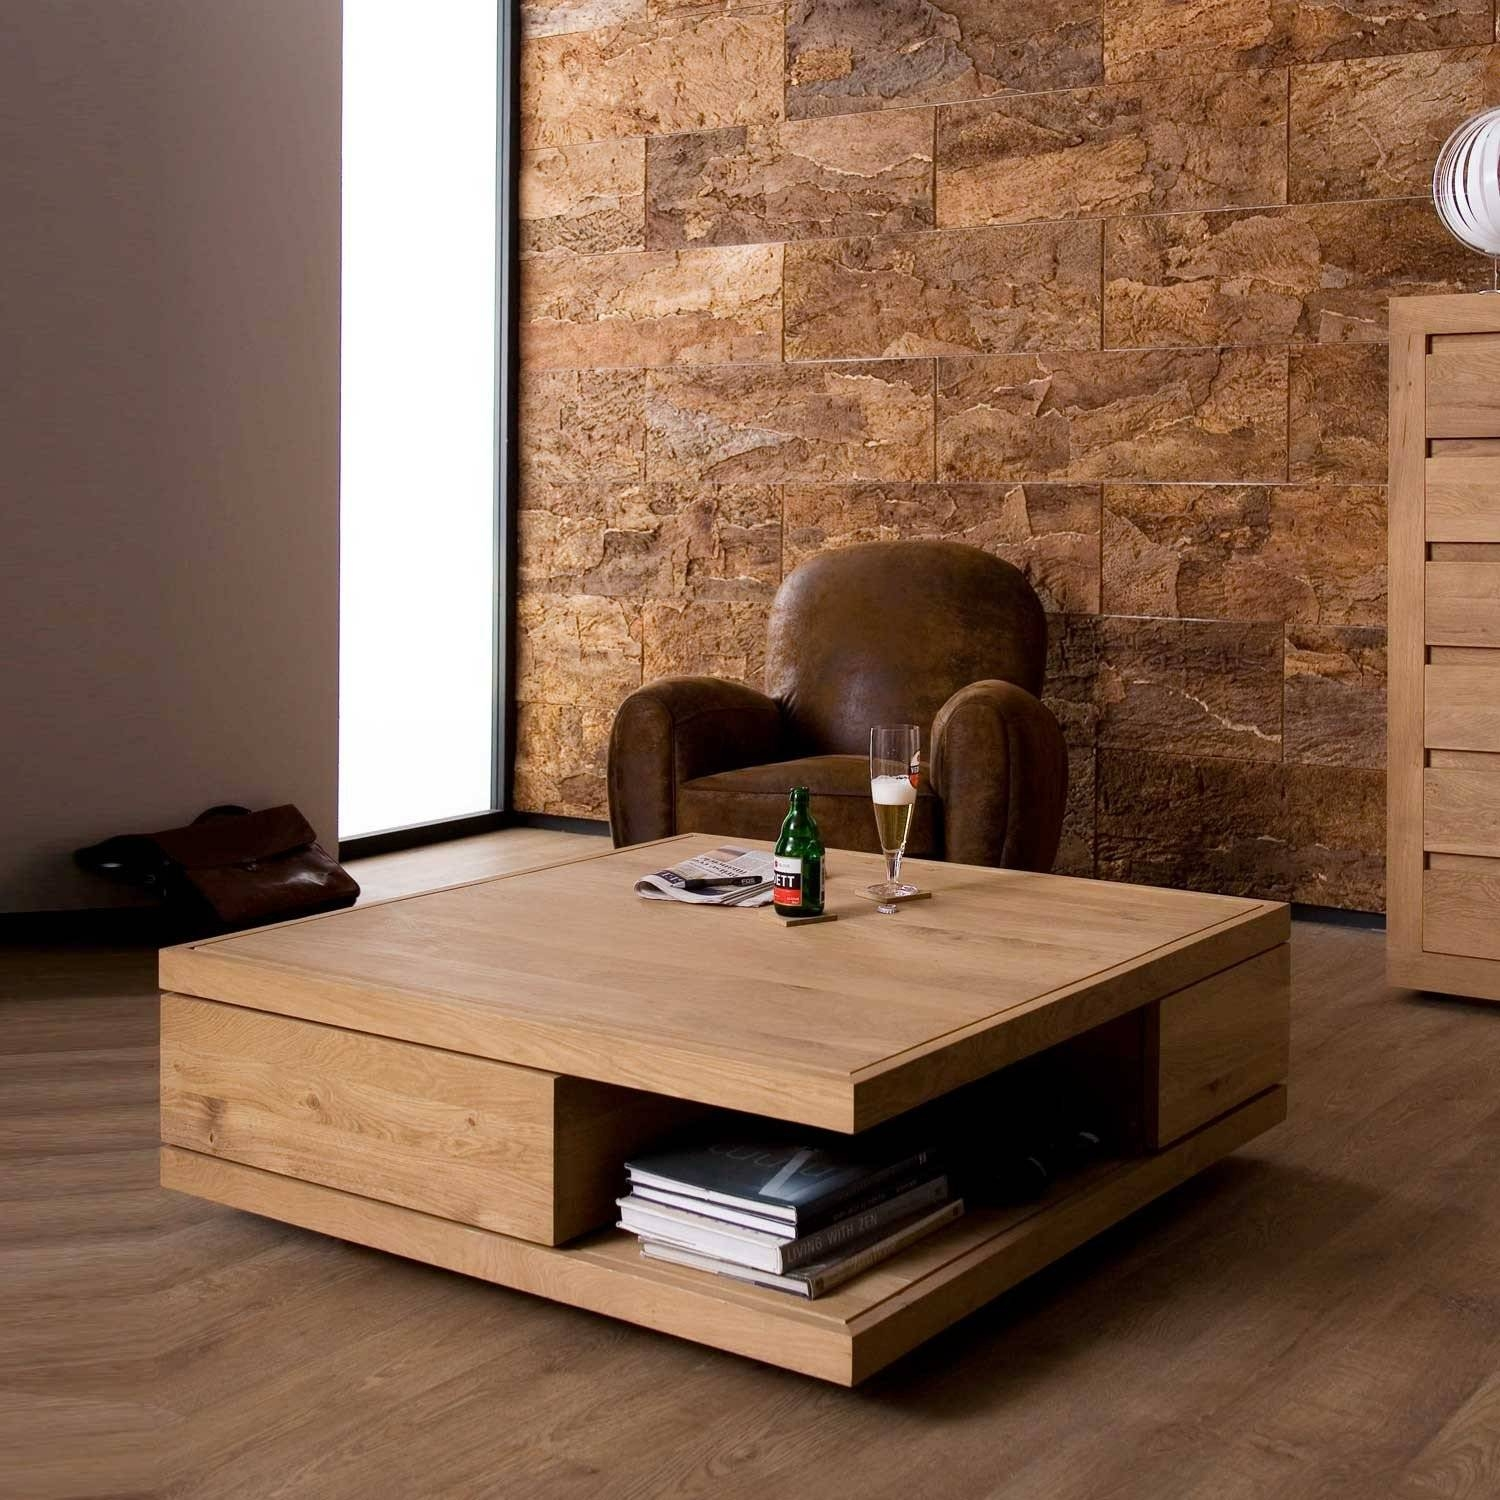 Ethnicraft Flat Oak Coffee Tables | Solid Wood Furniture intended for Oak Coffee Tables With Storage (Image 3 of 15)